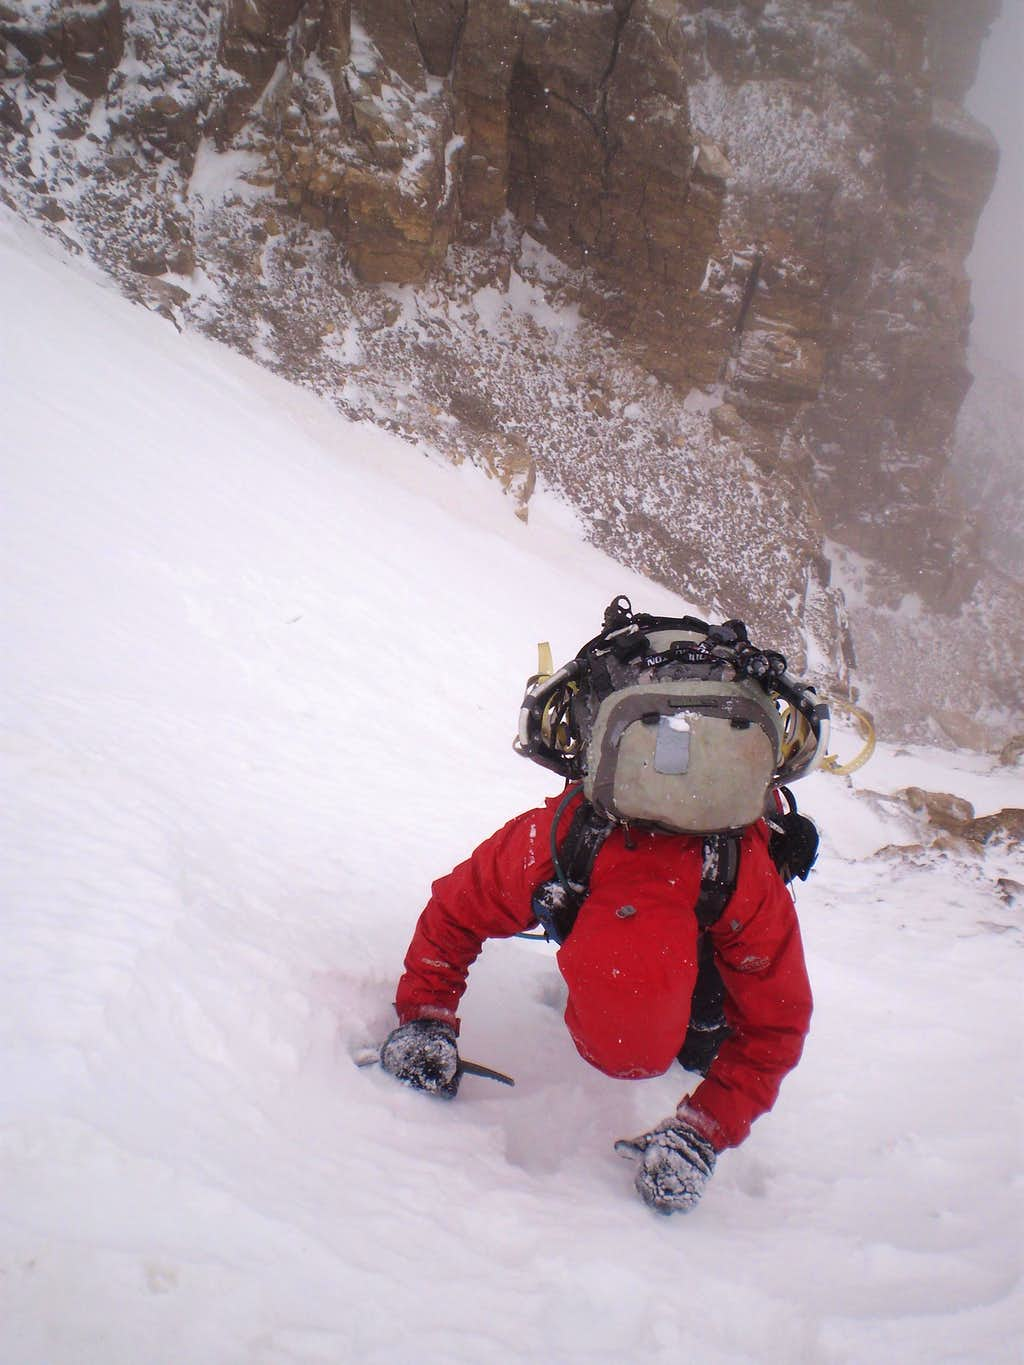 Kicking steps on one of the couloirs